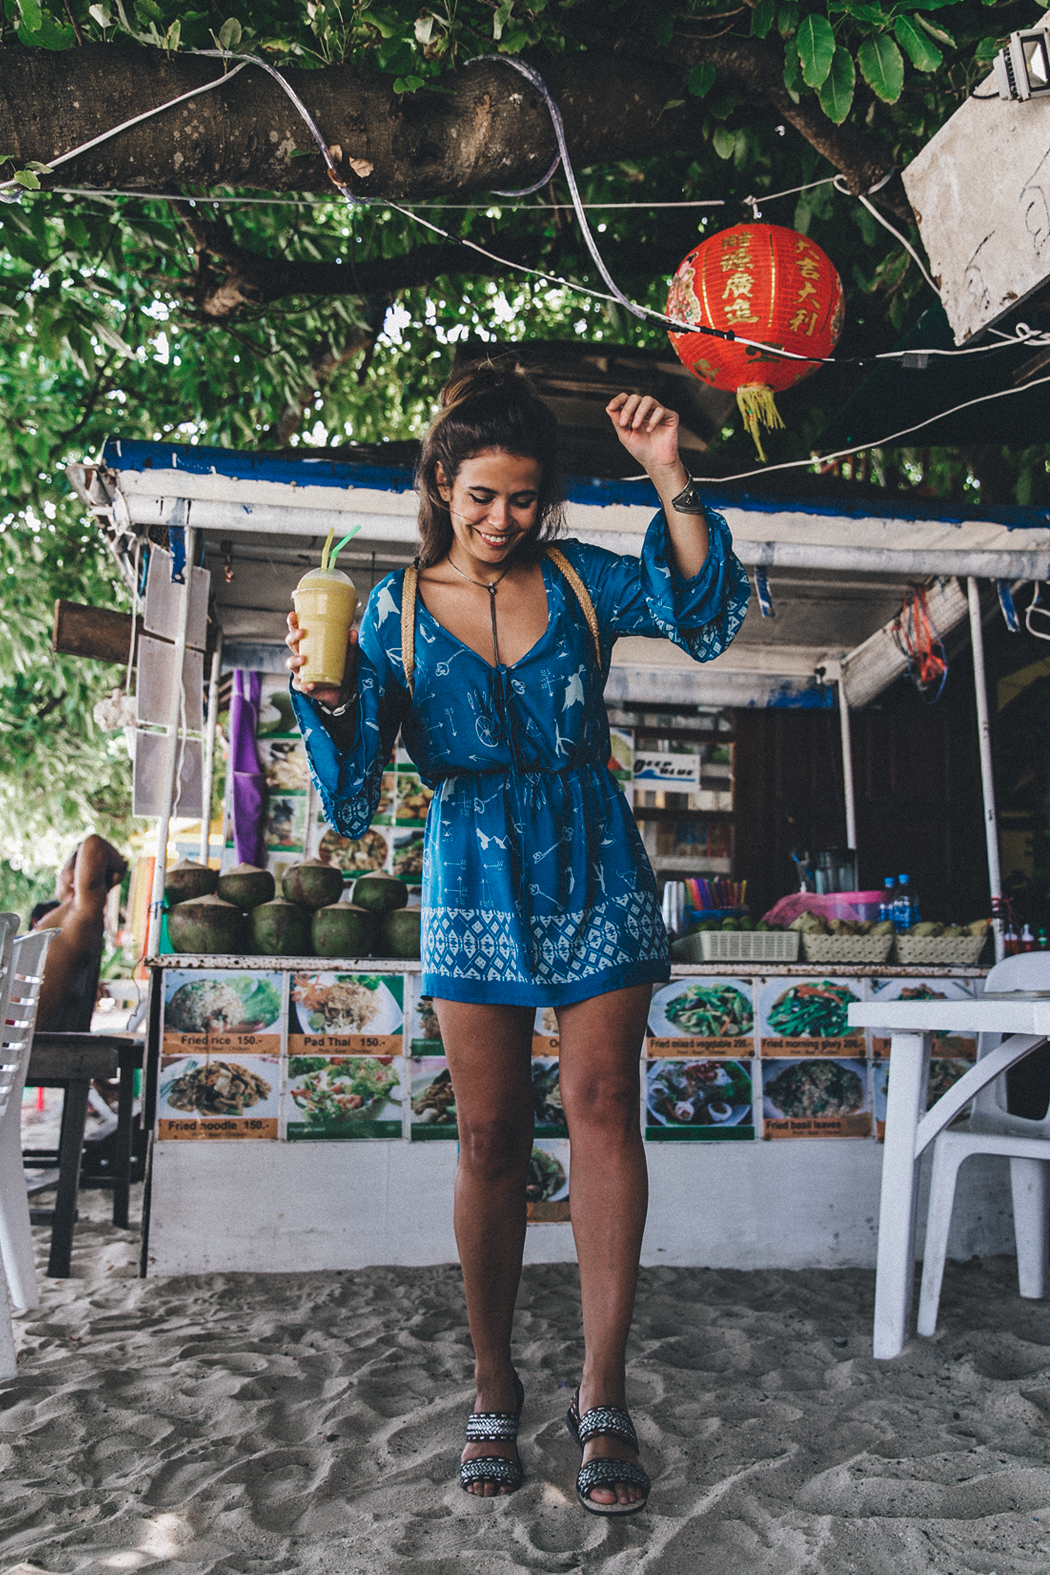 Bohemian_Bones_Dress-Revolve_Clothing-Layering_Necklace-Backpack-Thailand-Phi_Phi_Island-Summer_Look-Outfit-Beach-13